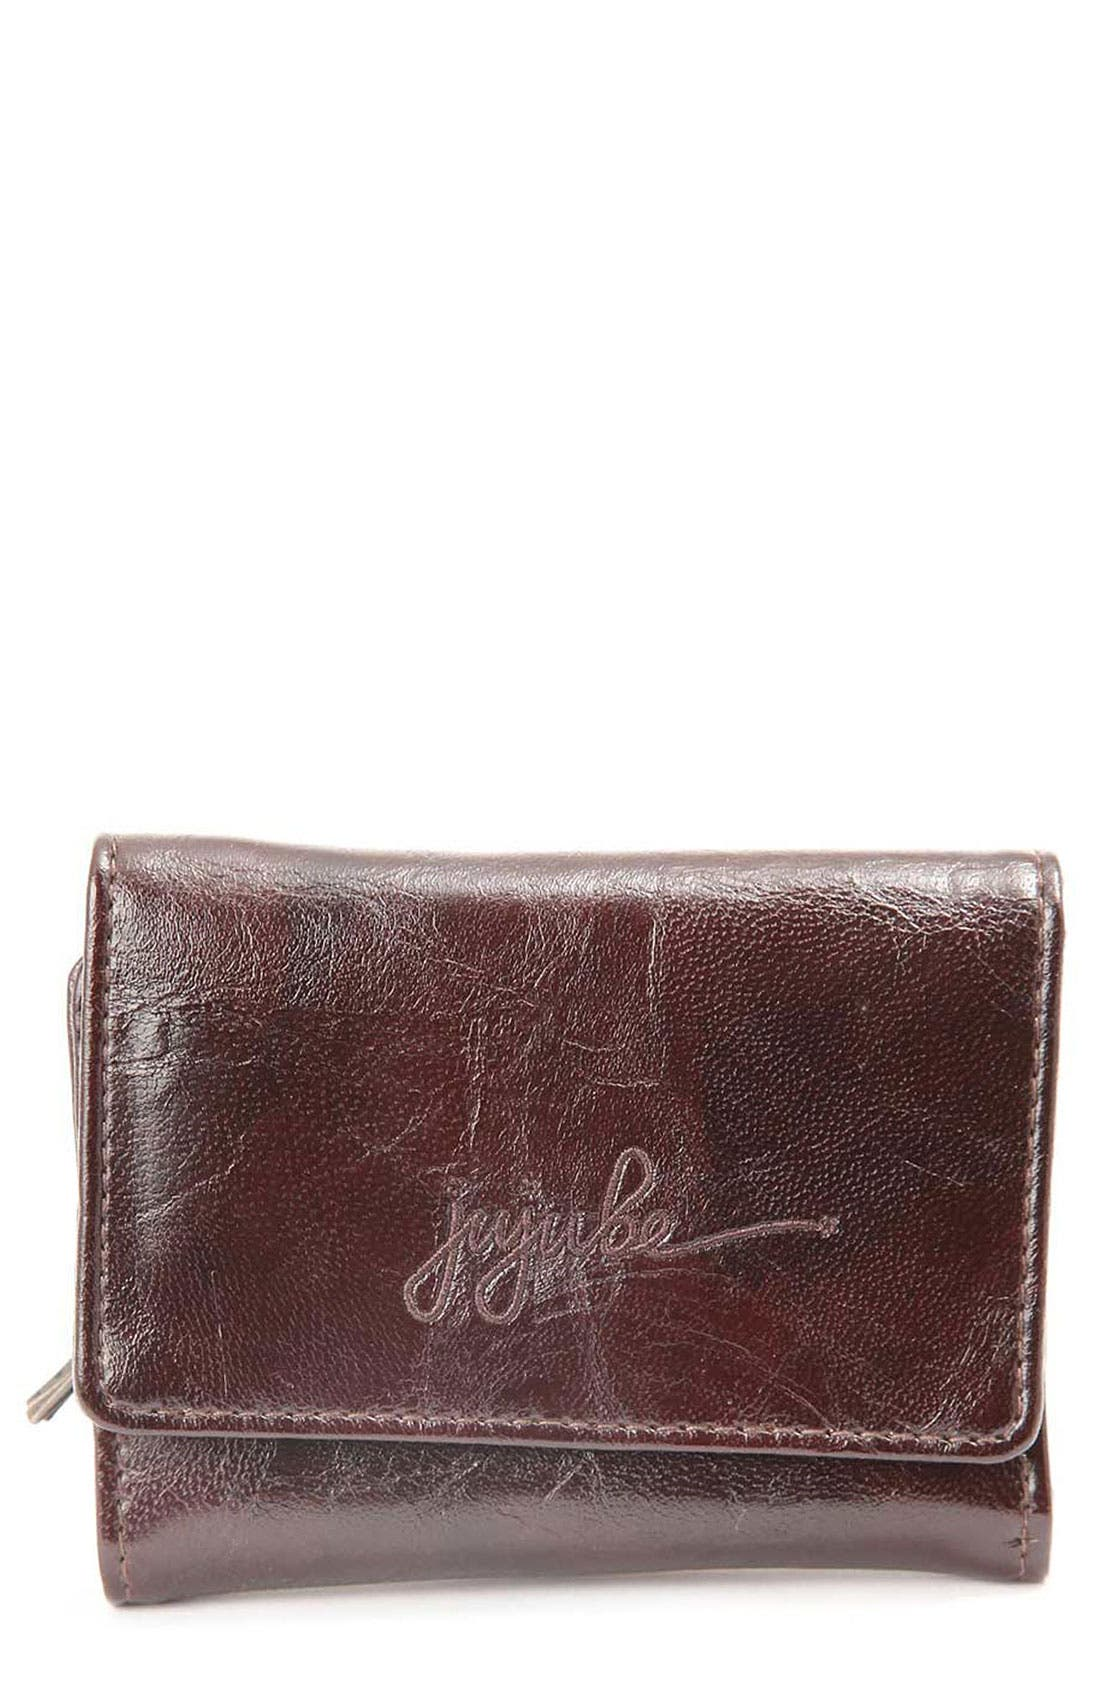 Alternate Image 1 Selected - Ju-Ju-Be 'Be Thrifty - Legacy' Flap Wallet